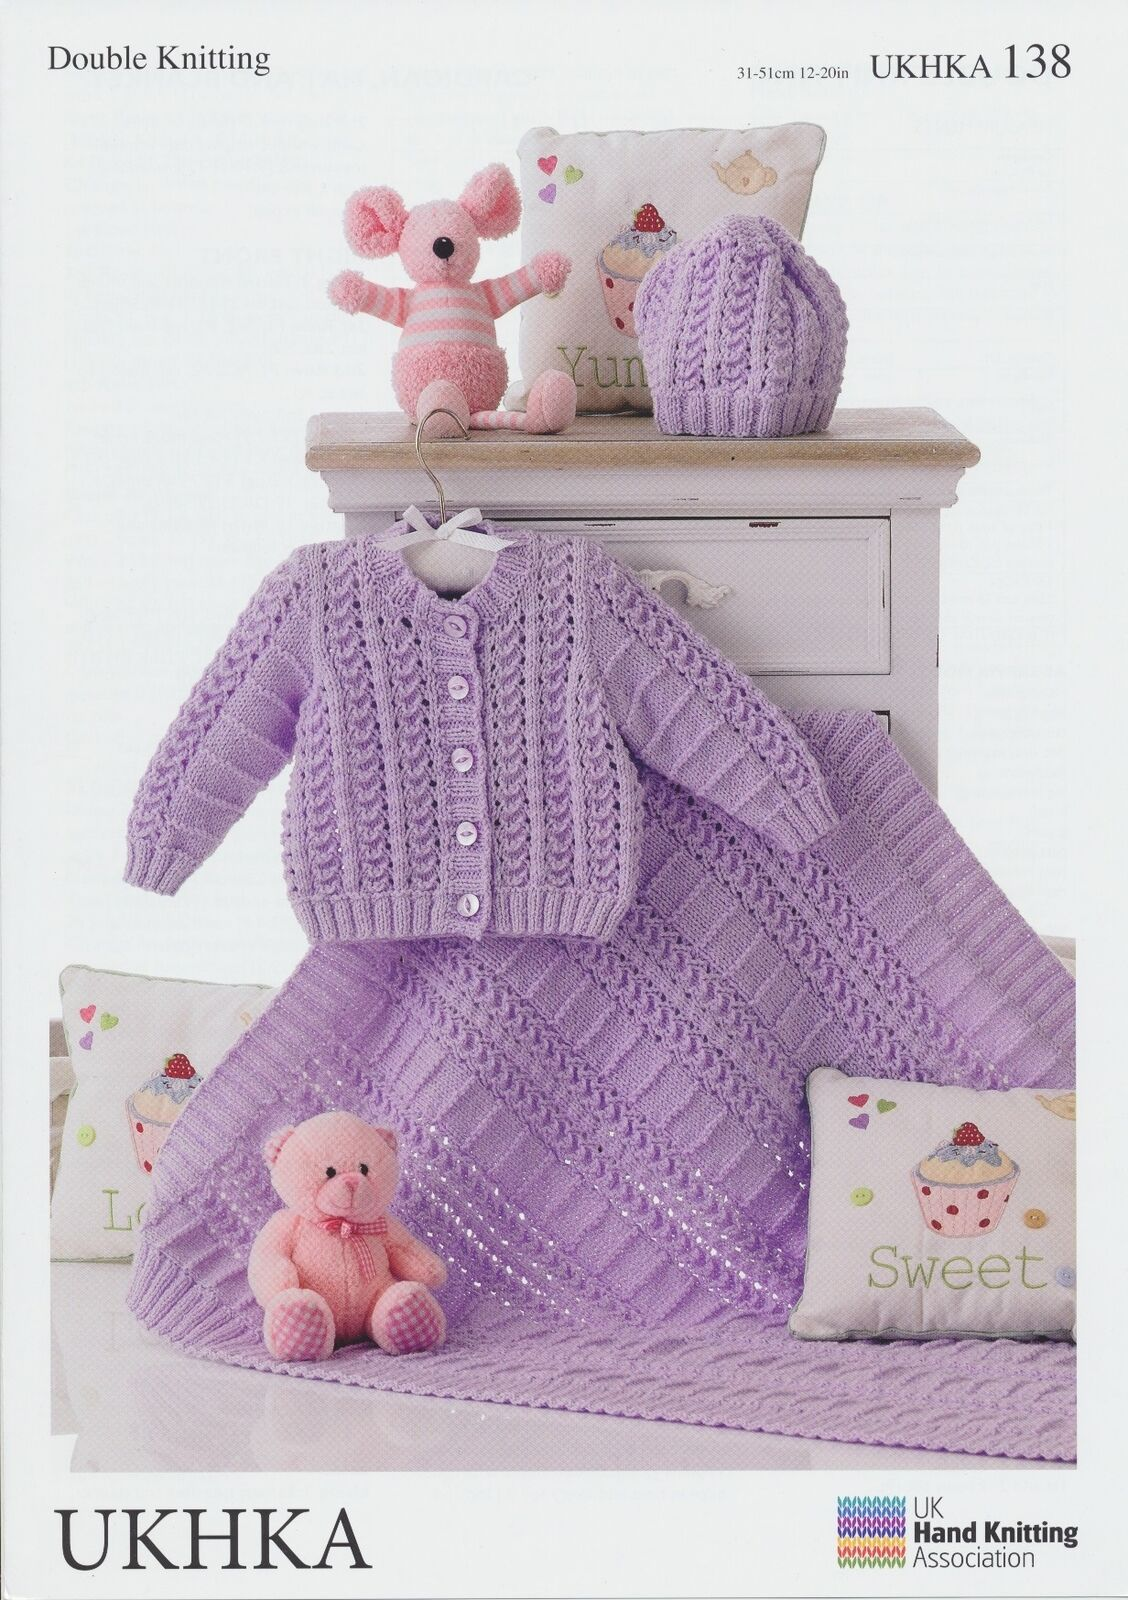 Knitting Pattern Baby Blanket Double Knitting : Double Knitting Pattern Baby Hat, Cardigan & Blanket UKHKA ...